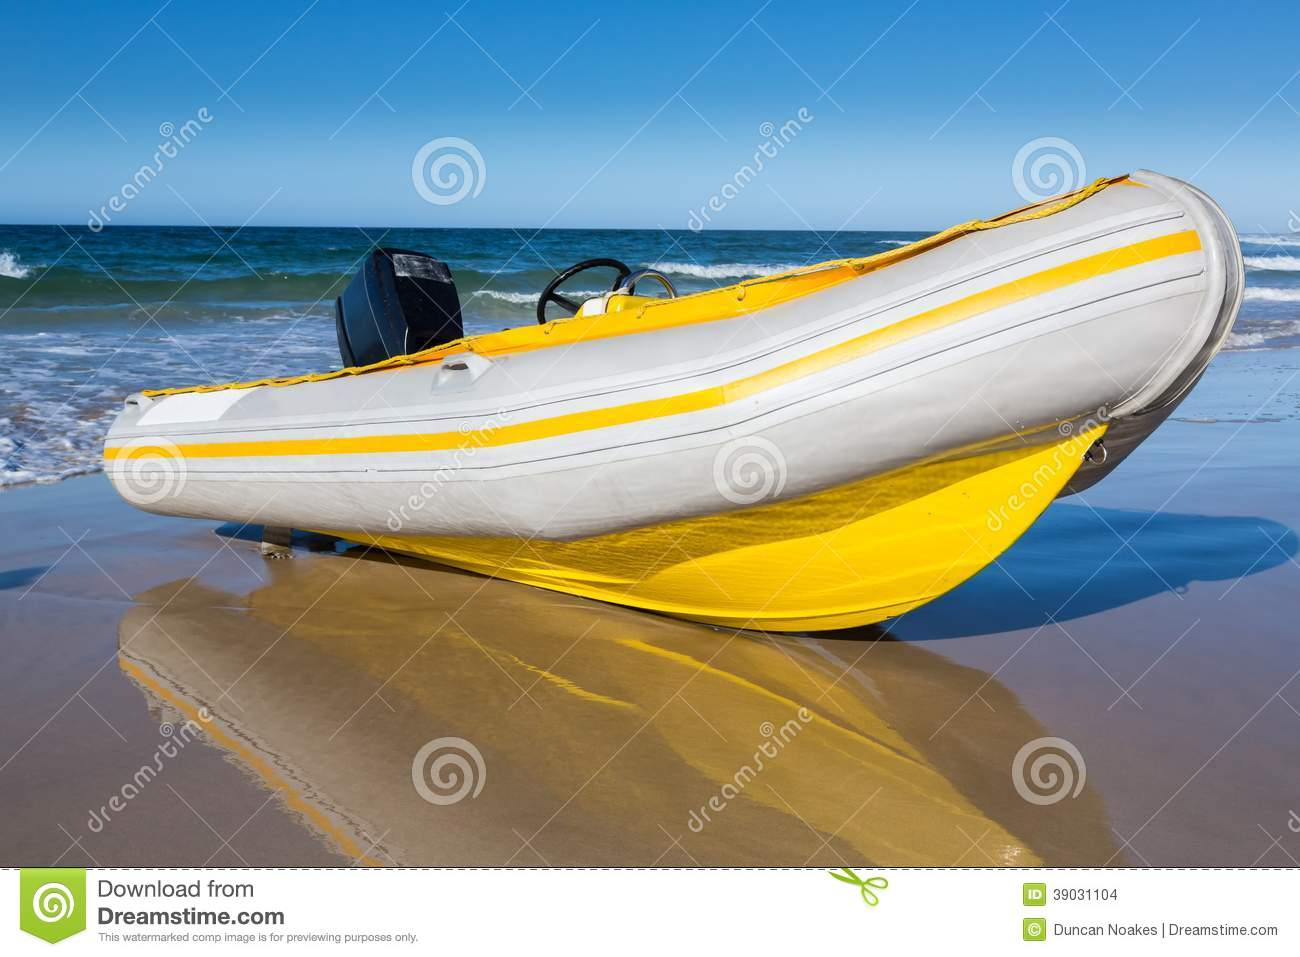 Inflatable Boat With Motor Stock Photo - Image: 39031104